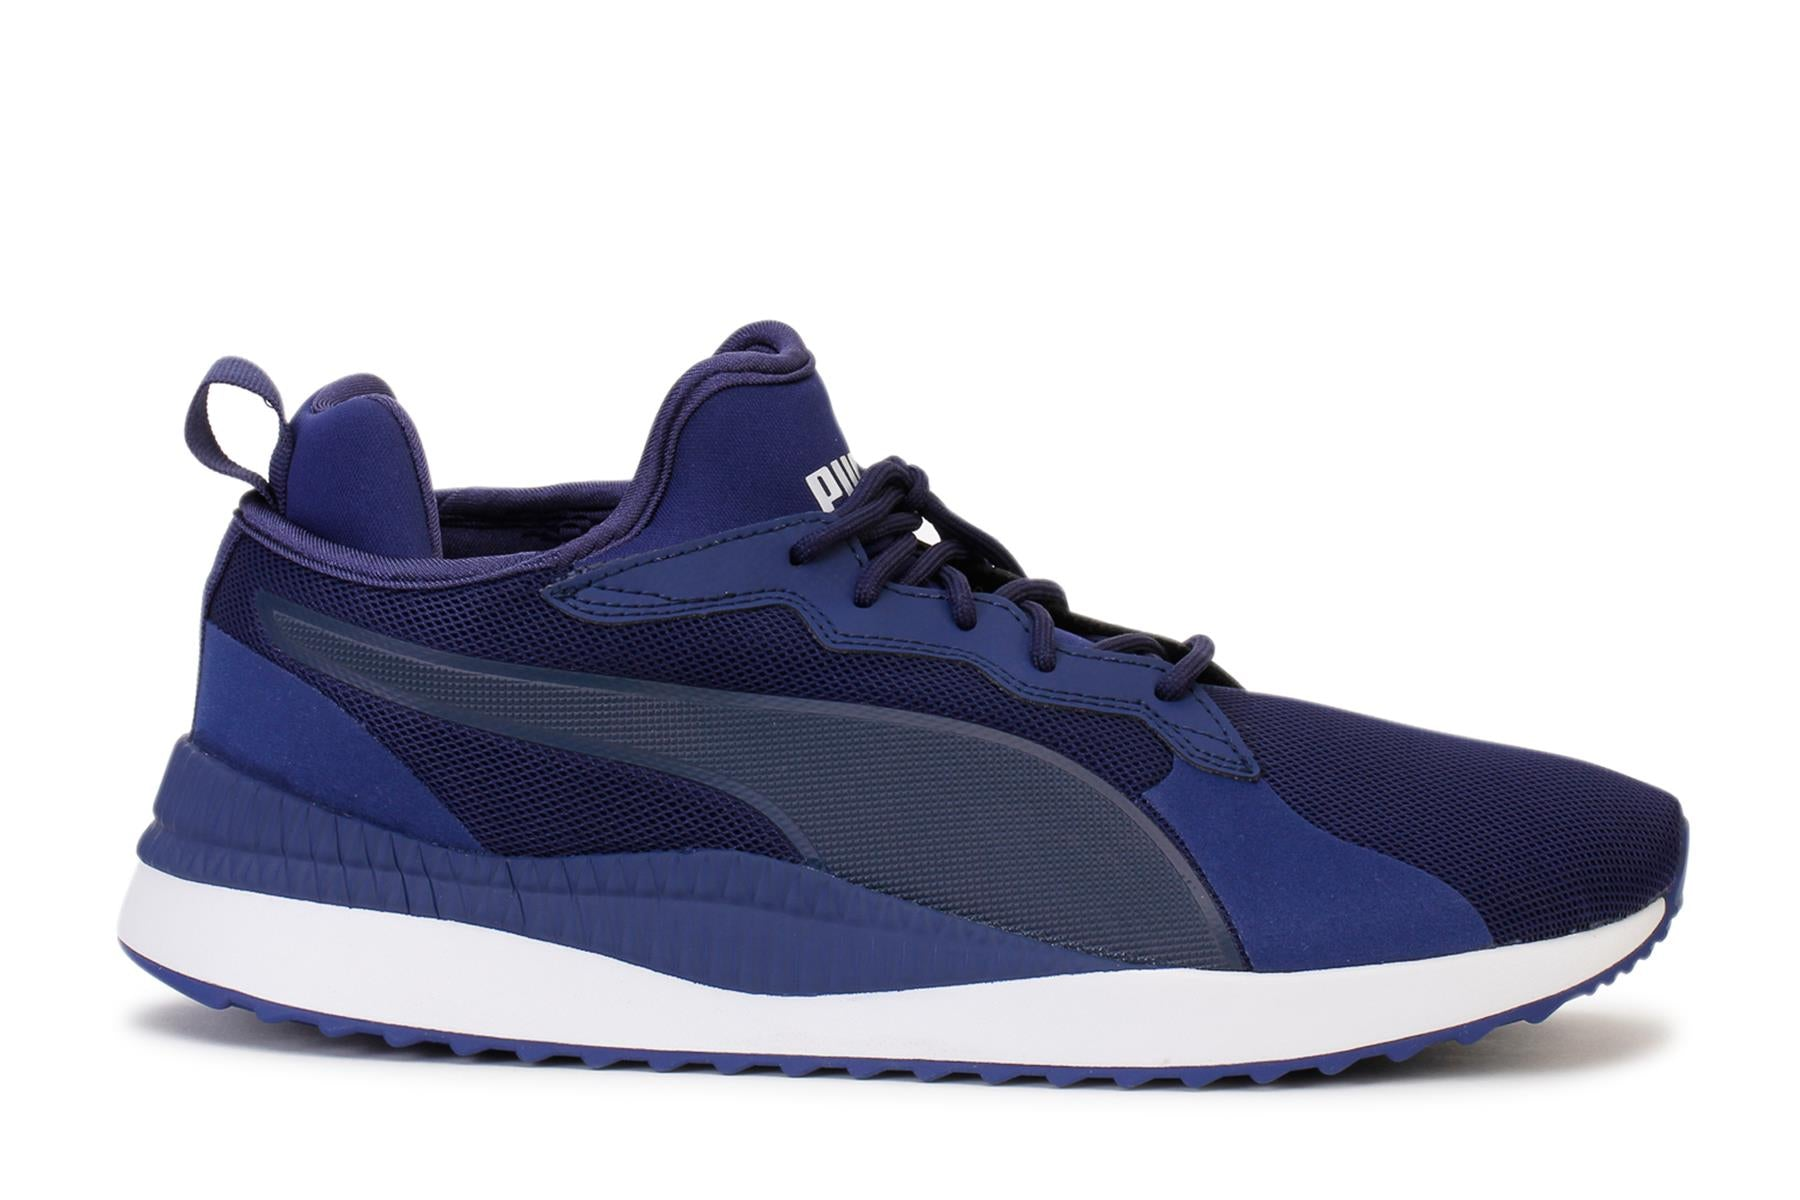 Pacer Next Puma Sneakers